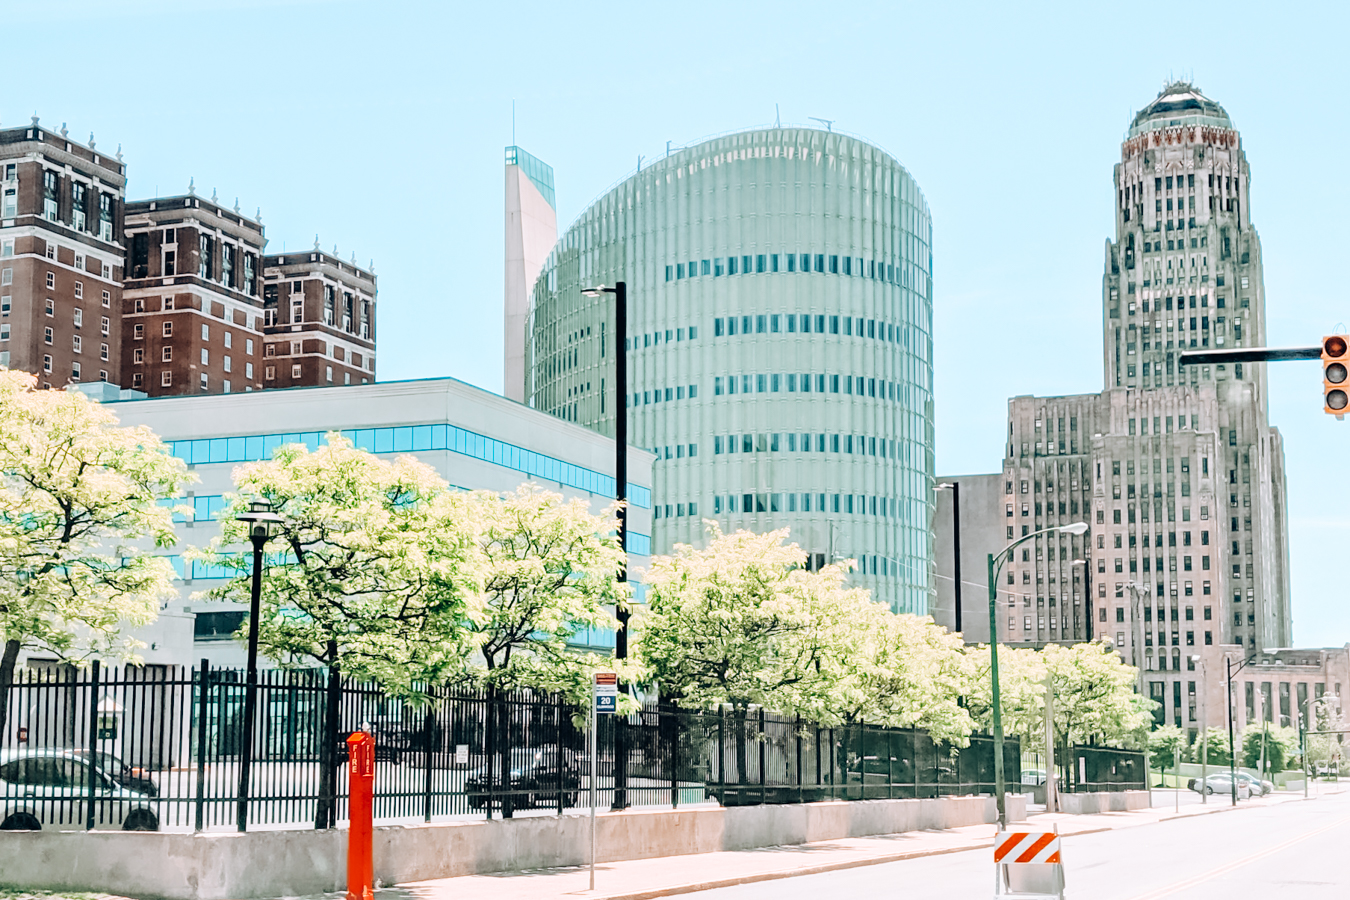 Buildings and trees in Buffalo